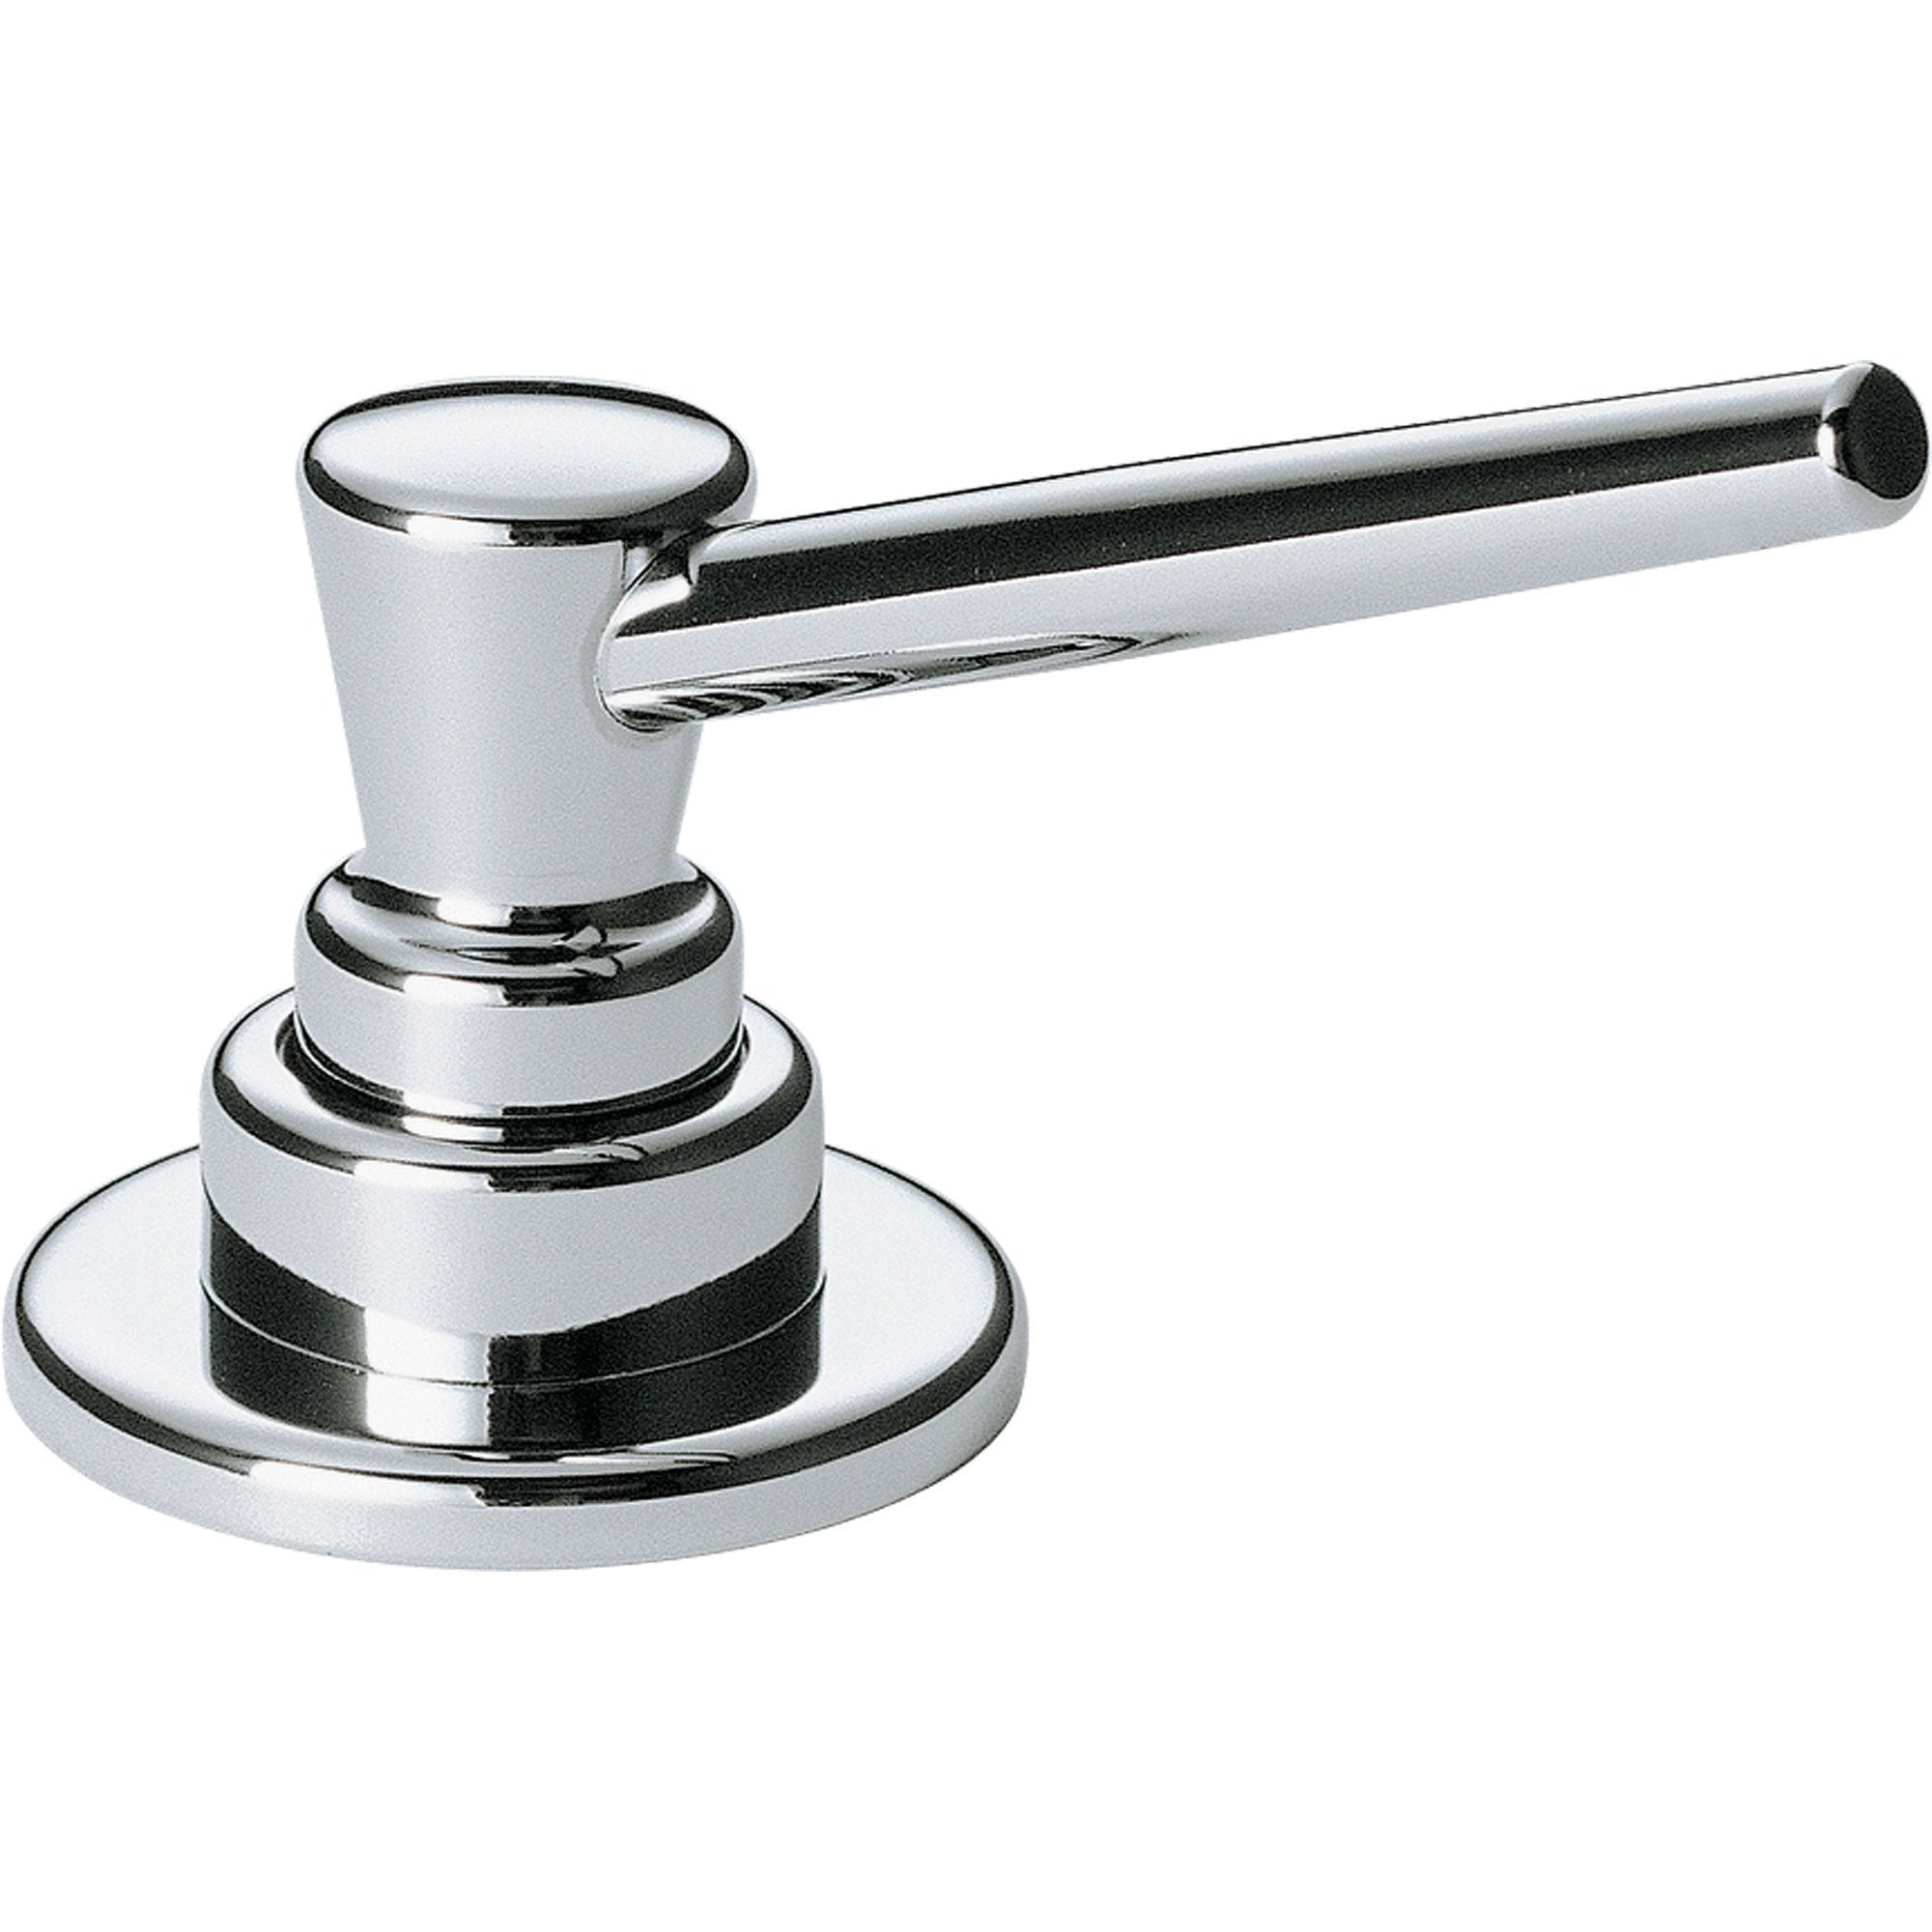 Delta Classic Deck Mount Chrome Soap and Lotion Dispenser 208141